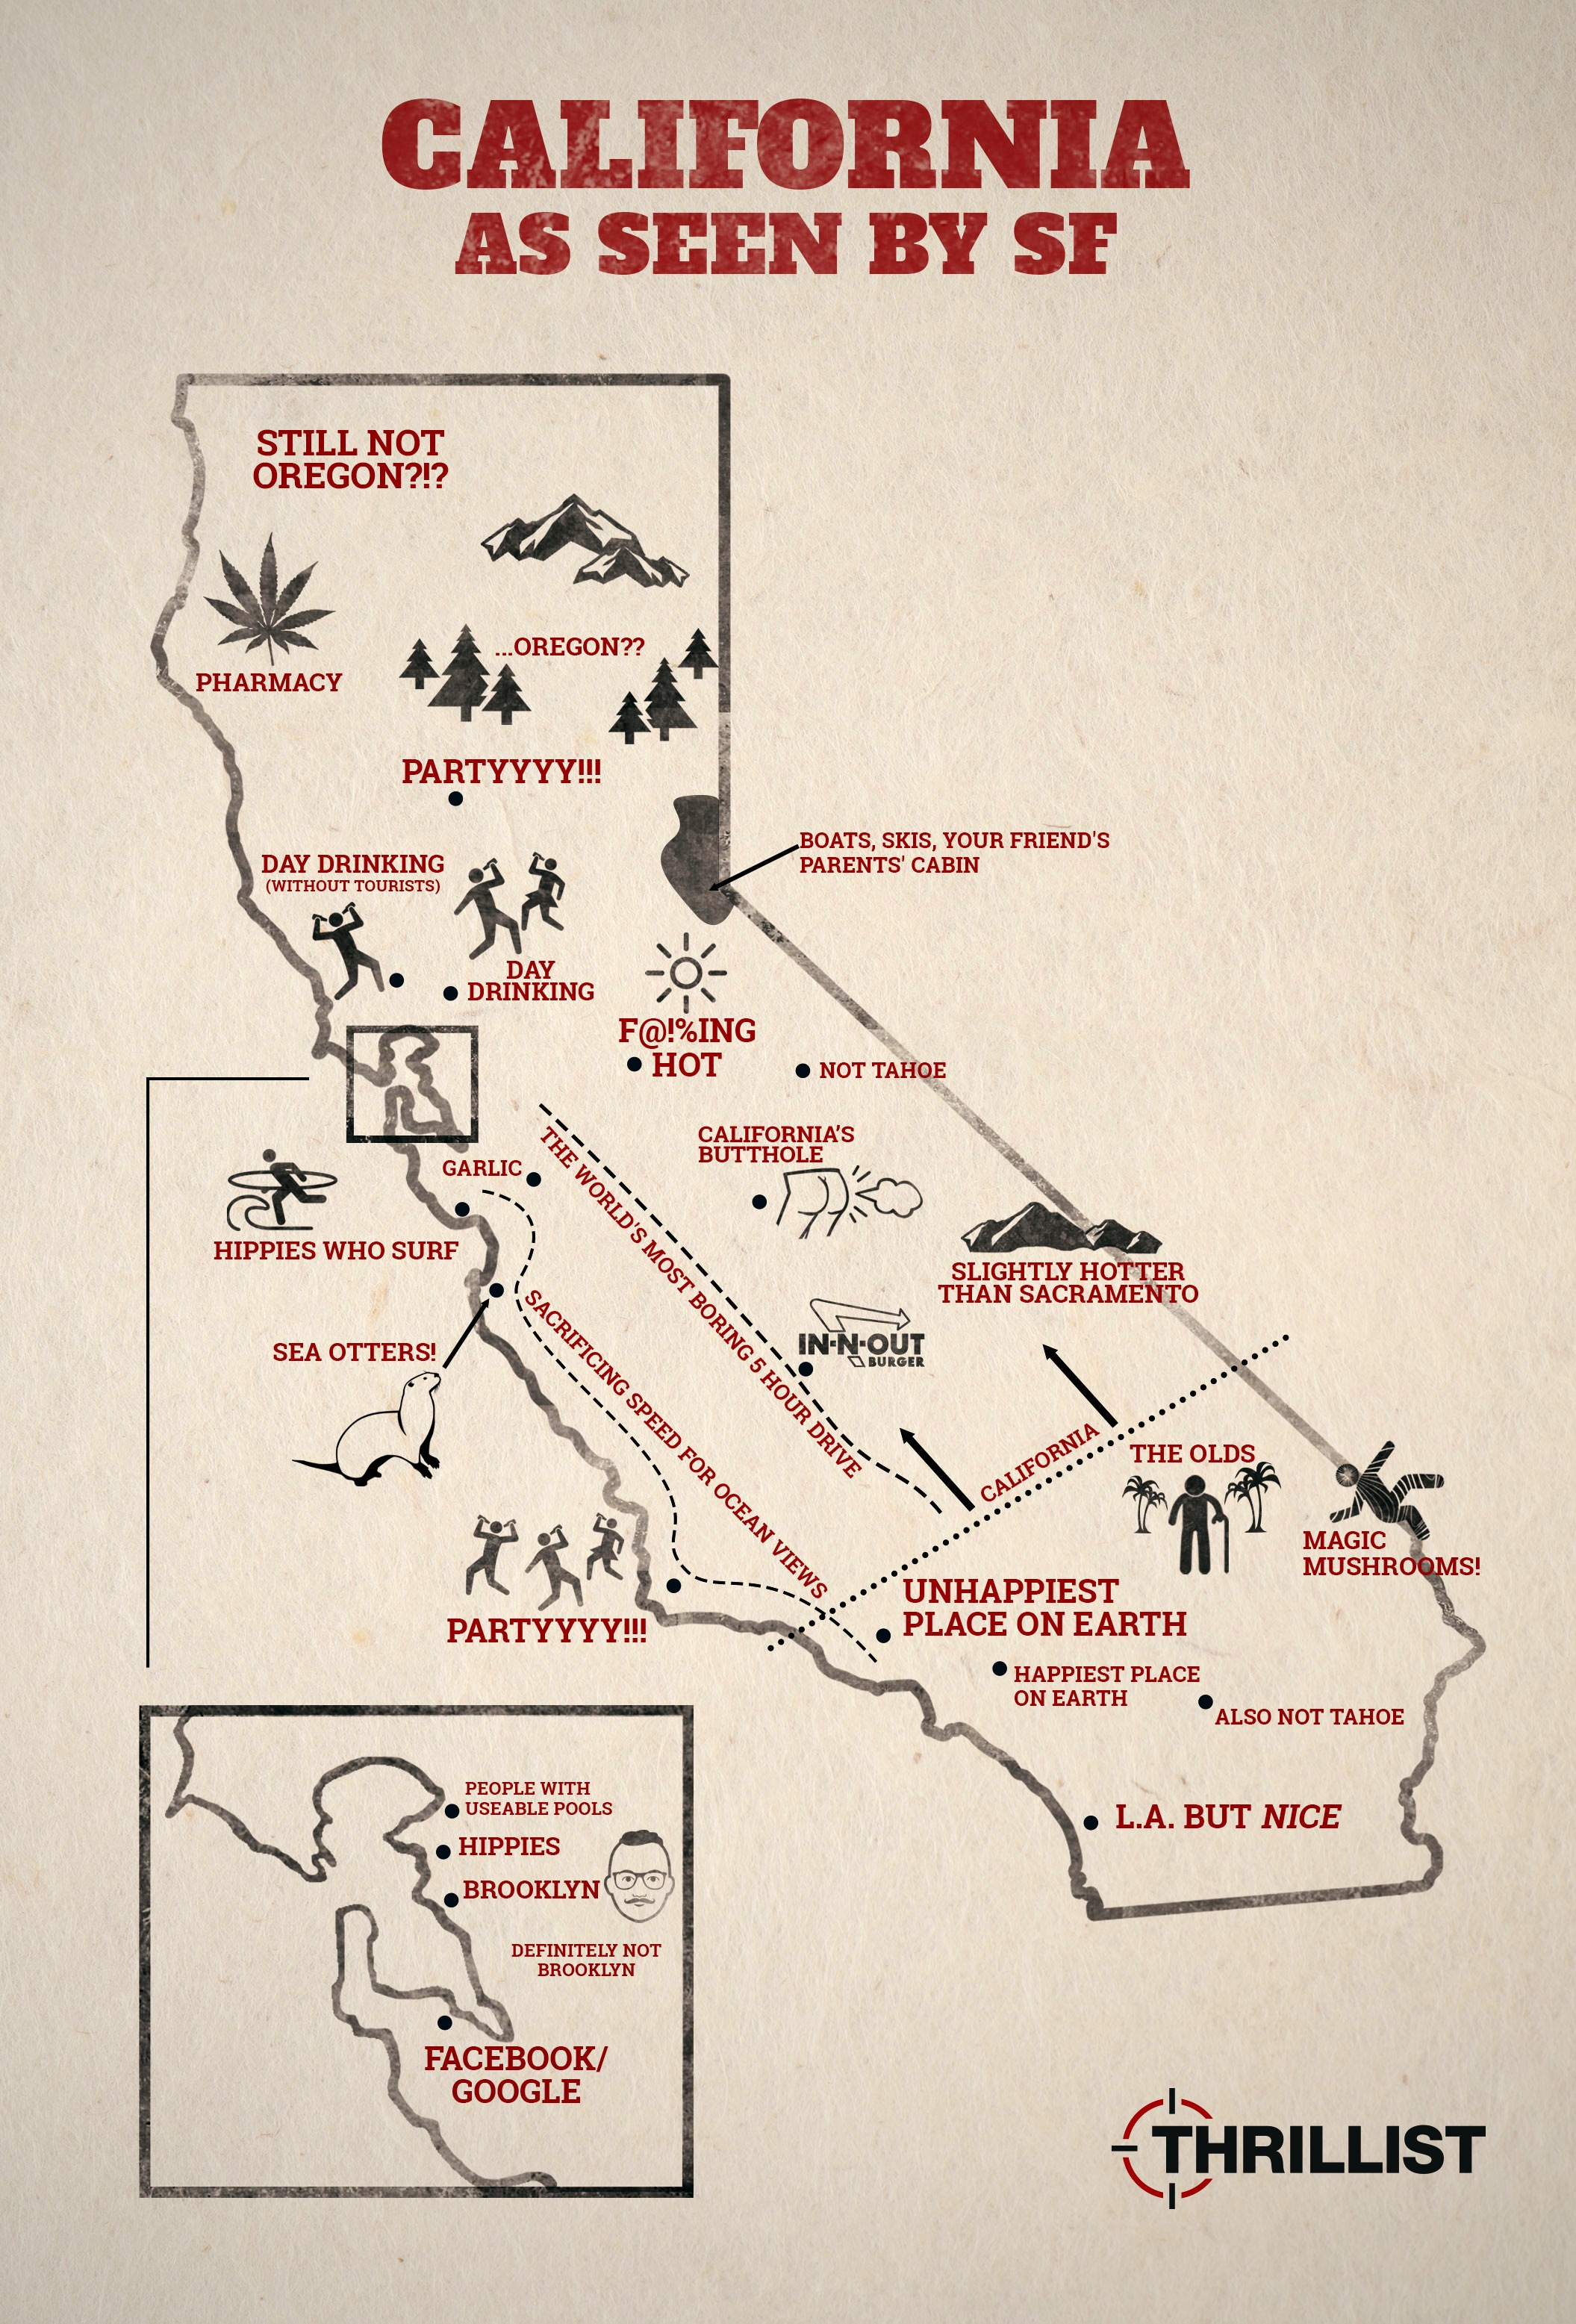 Map Of California Funny.California According To Sf Thrillist